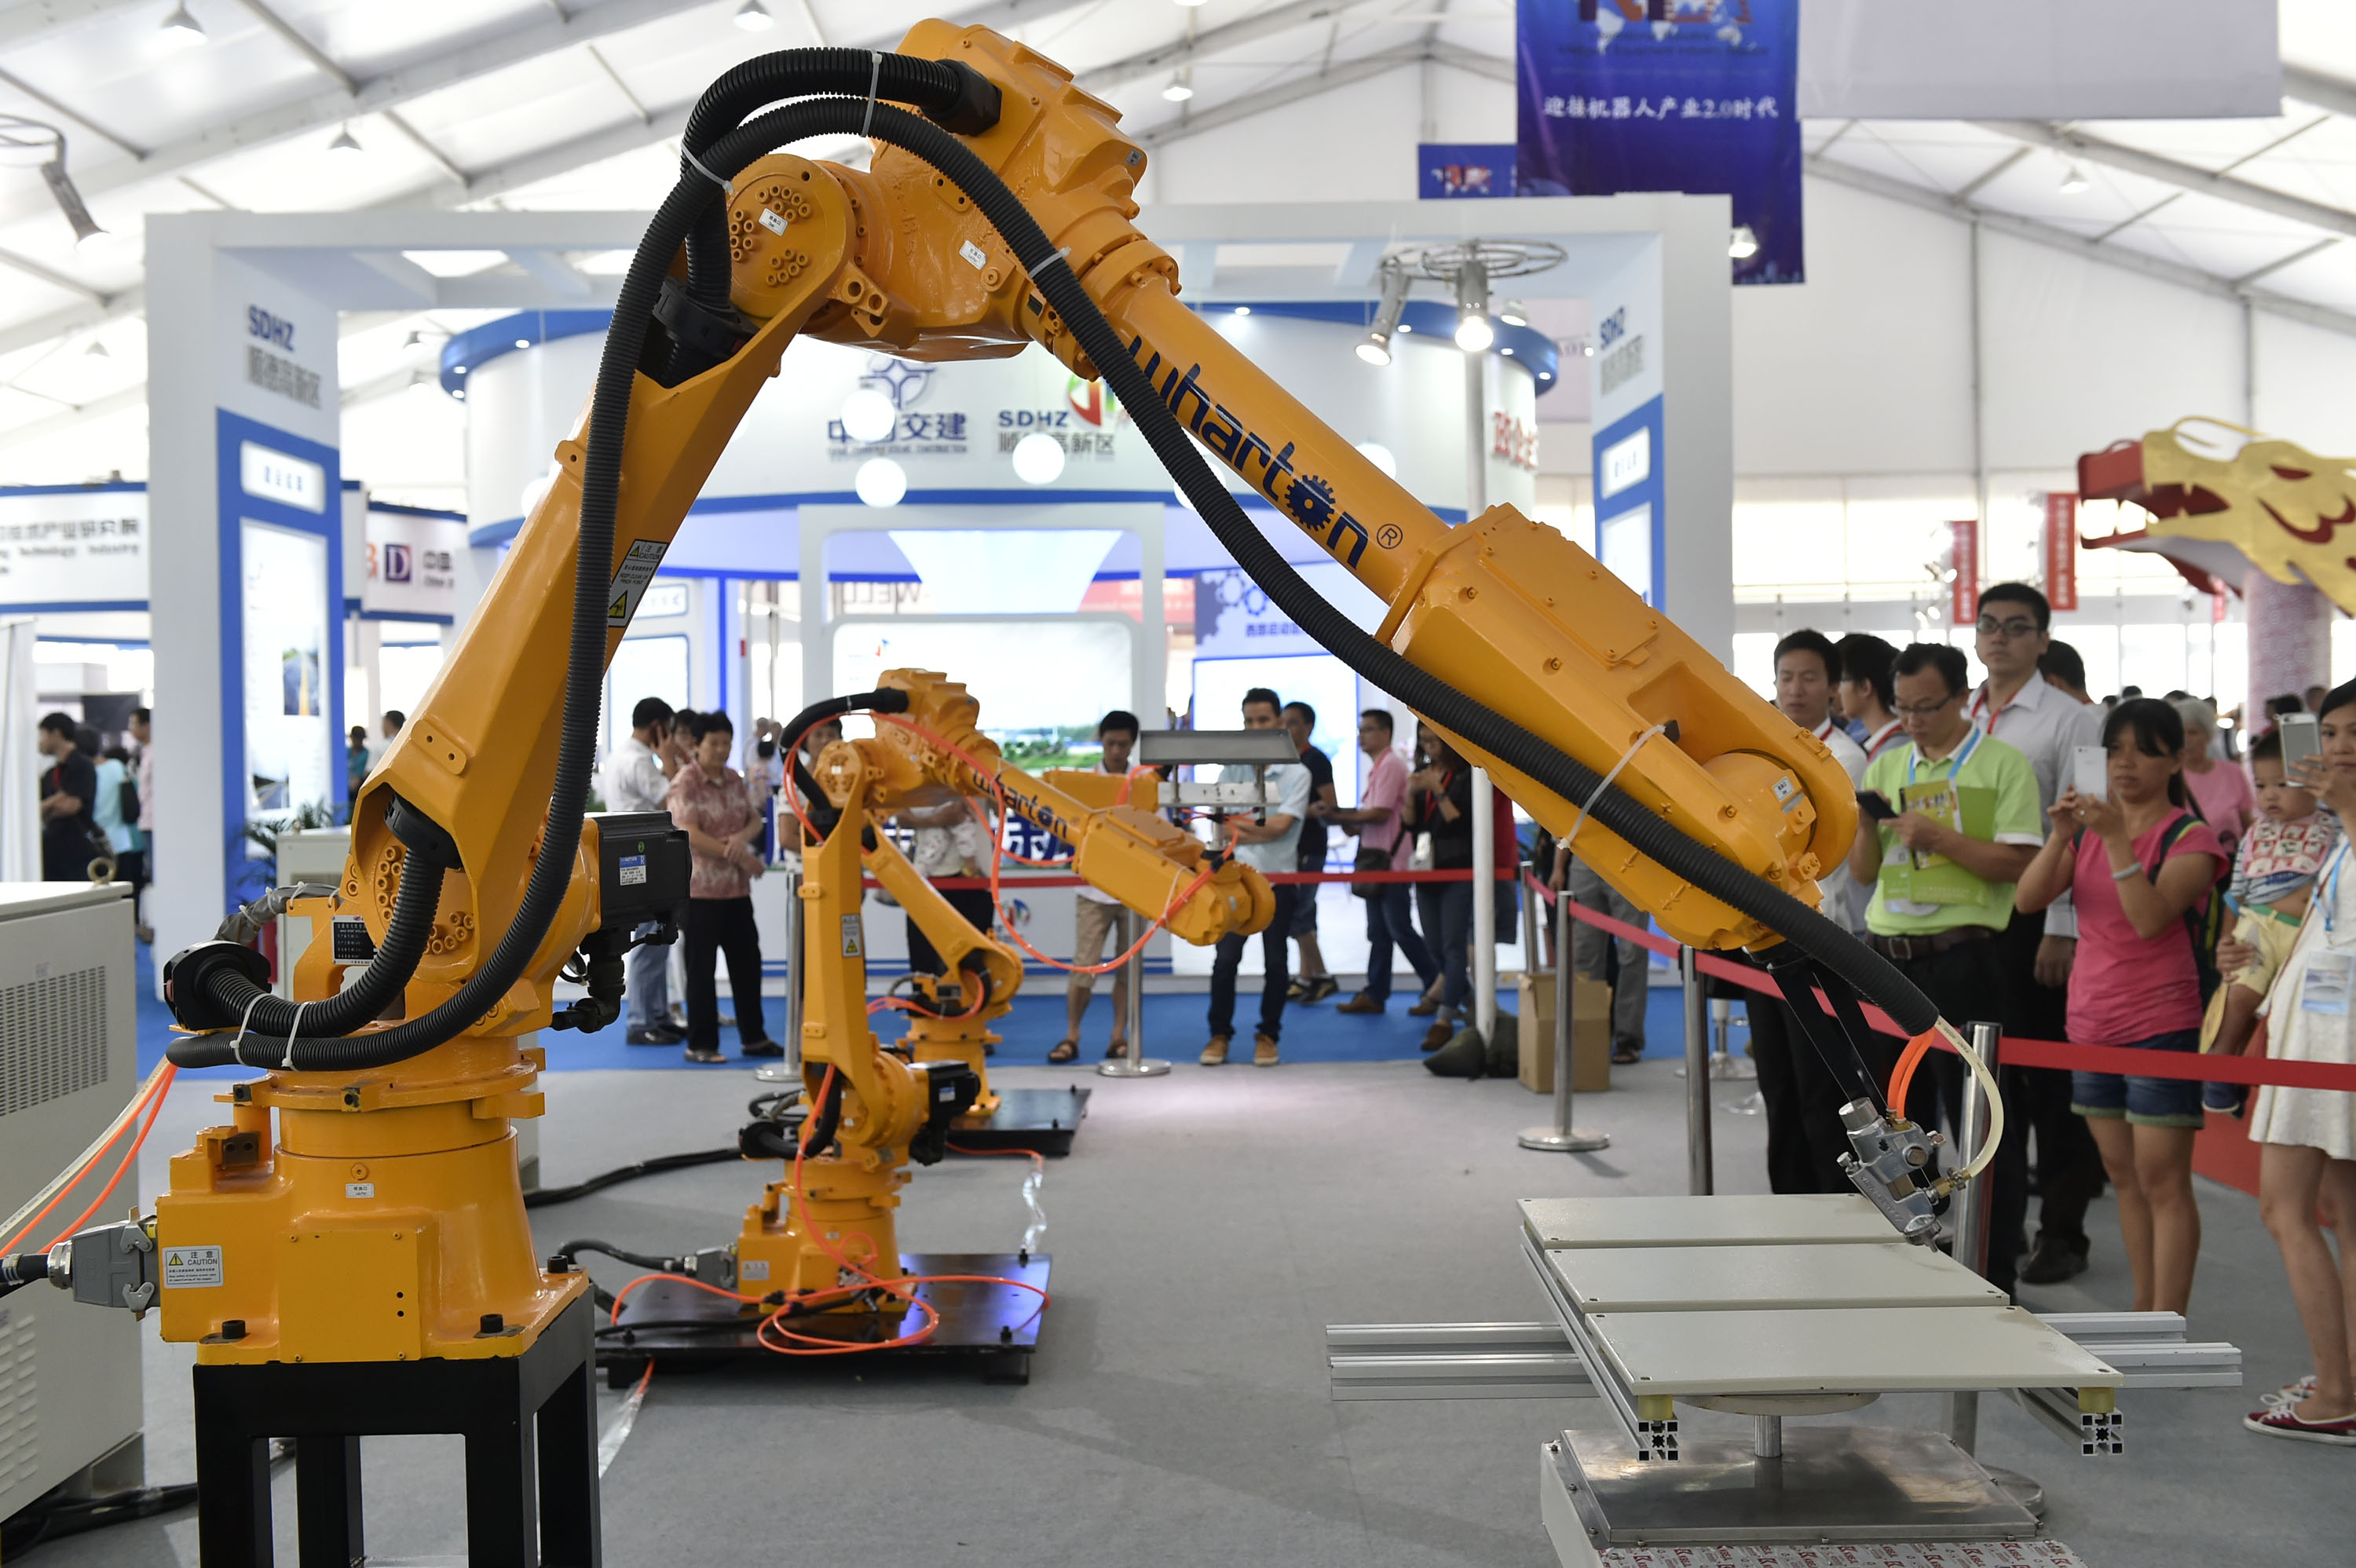 (150910) -- FOSHAN, Sept. 10, 2015 (Xinhua) -- Visitors watch an industrial robot operating at China International Internet Plus Exposition in Foshan, south China's Guangdong Province, Sept. 10, 2015. The three-day exposition kicked off here Thursday. (Xinhua/Liang Xu)(wjq)